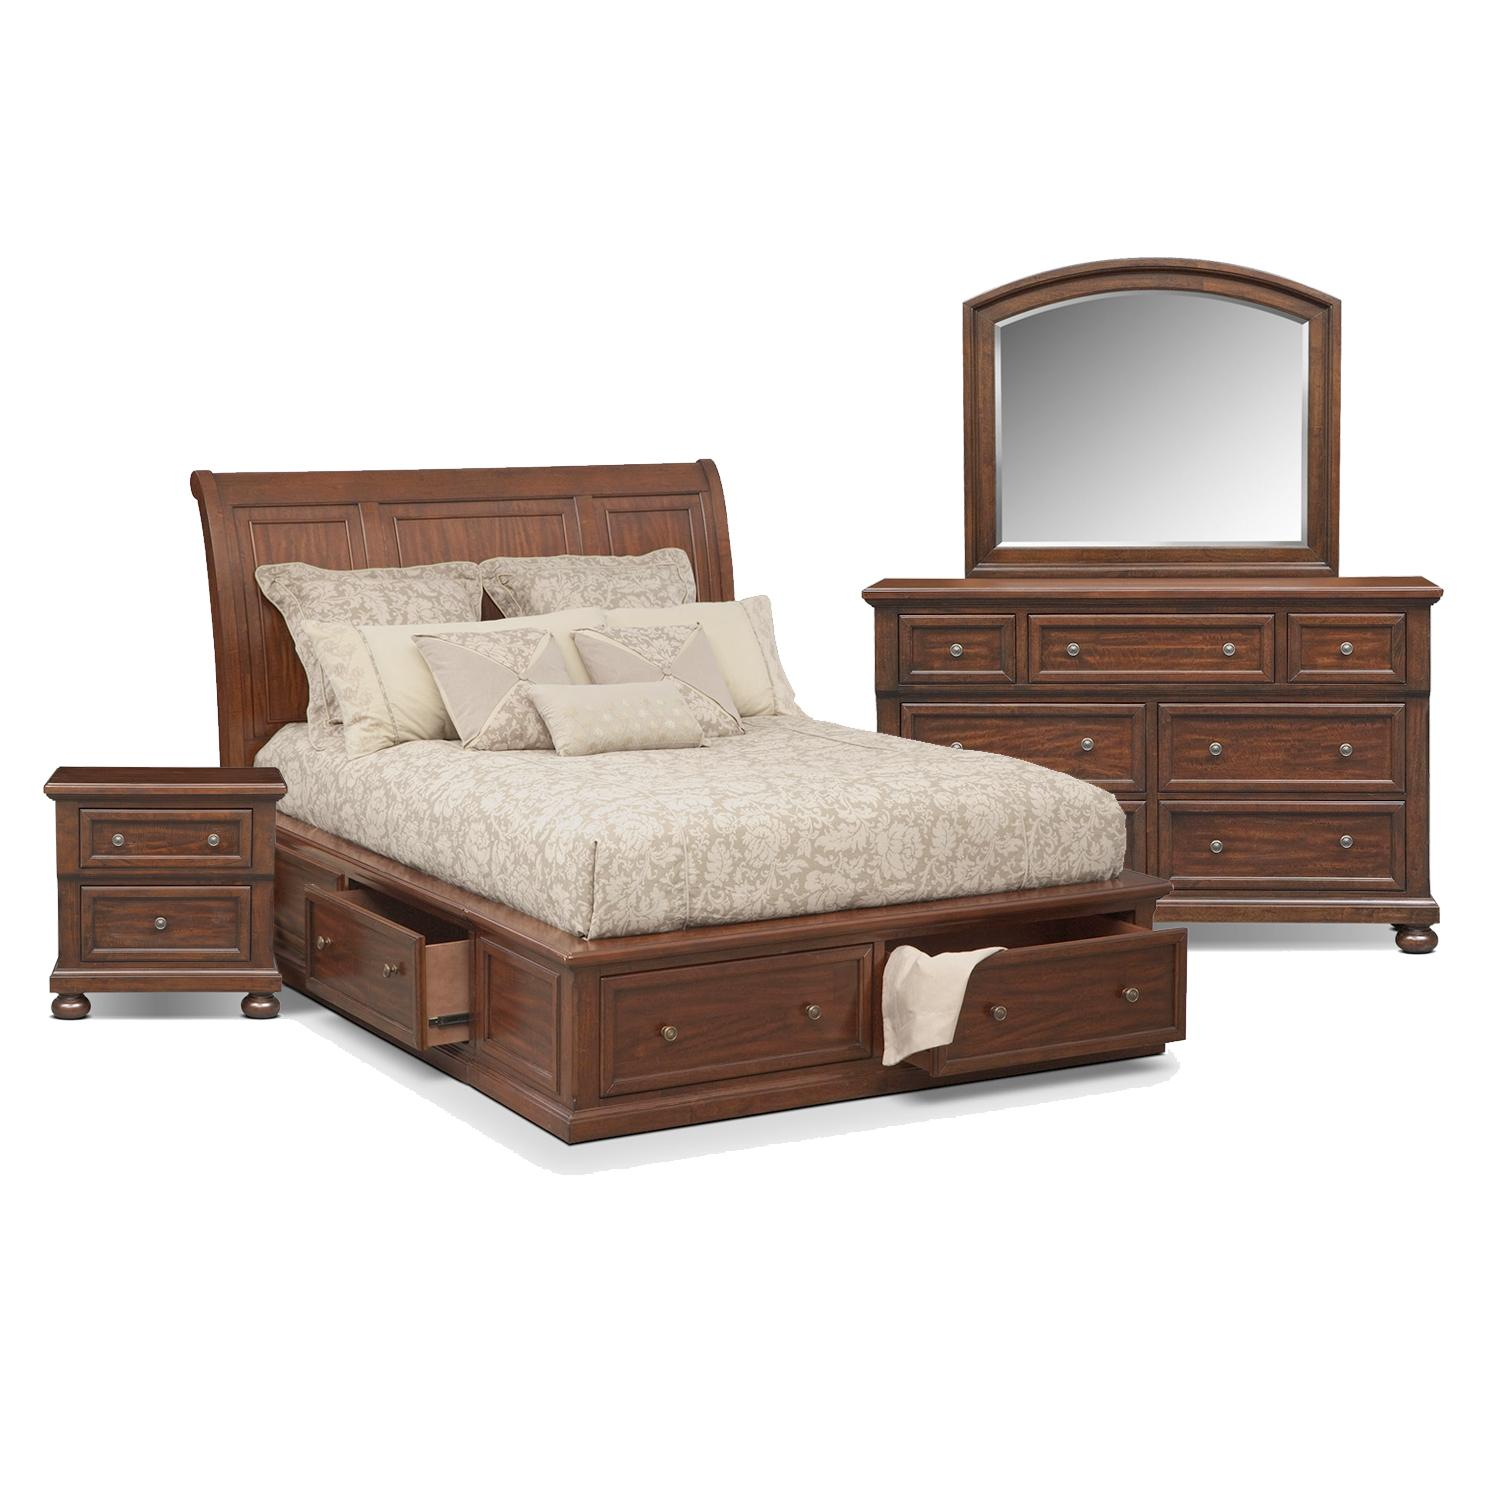 Bedroom Furniture: American Signature Furniture